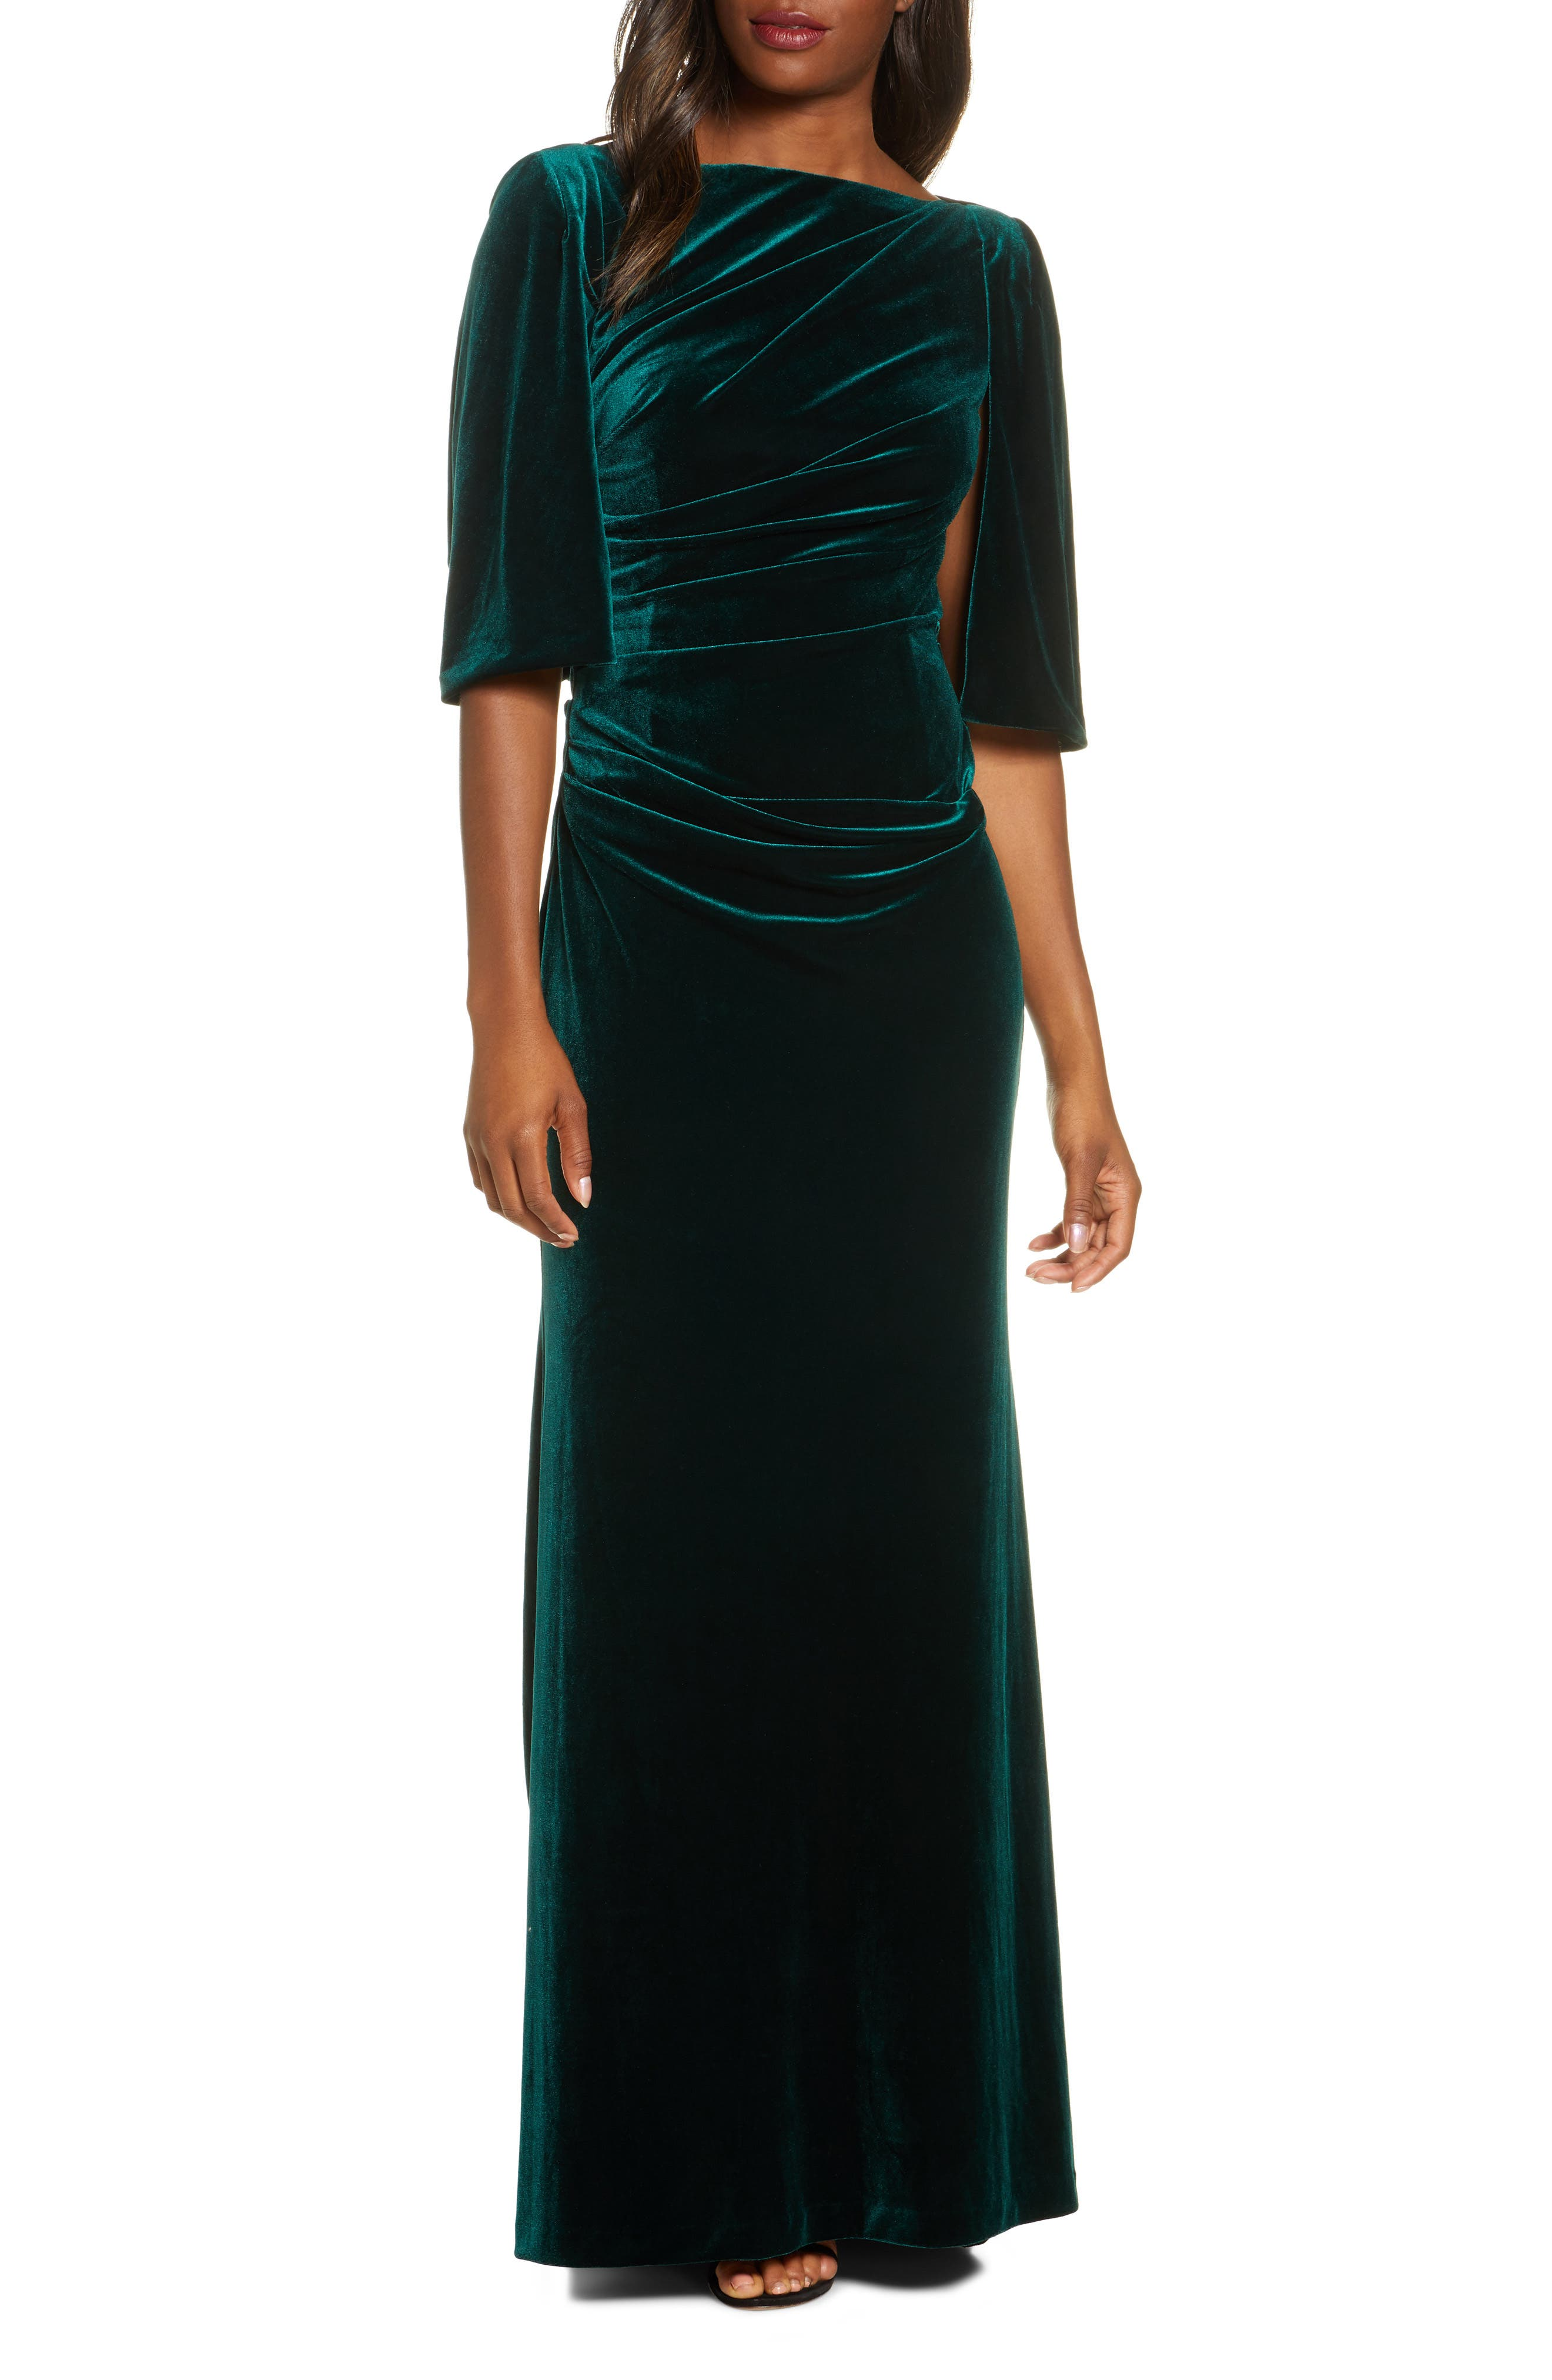 1940s Evening, Prom, Party, Formal, Ball Gowns Womens Eliza J Capelet Velvet Gown Size 14 - Green $188.00 AT vintagedancer.com